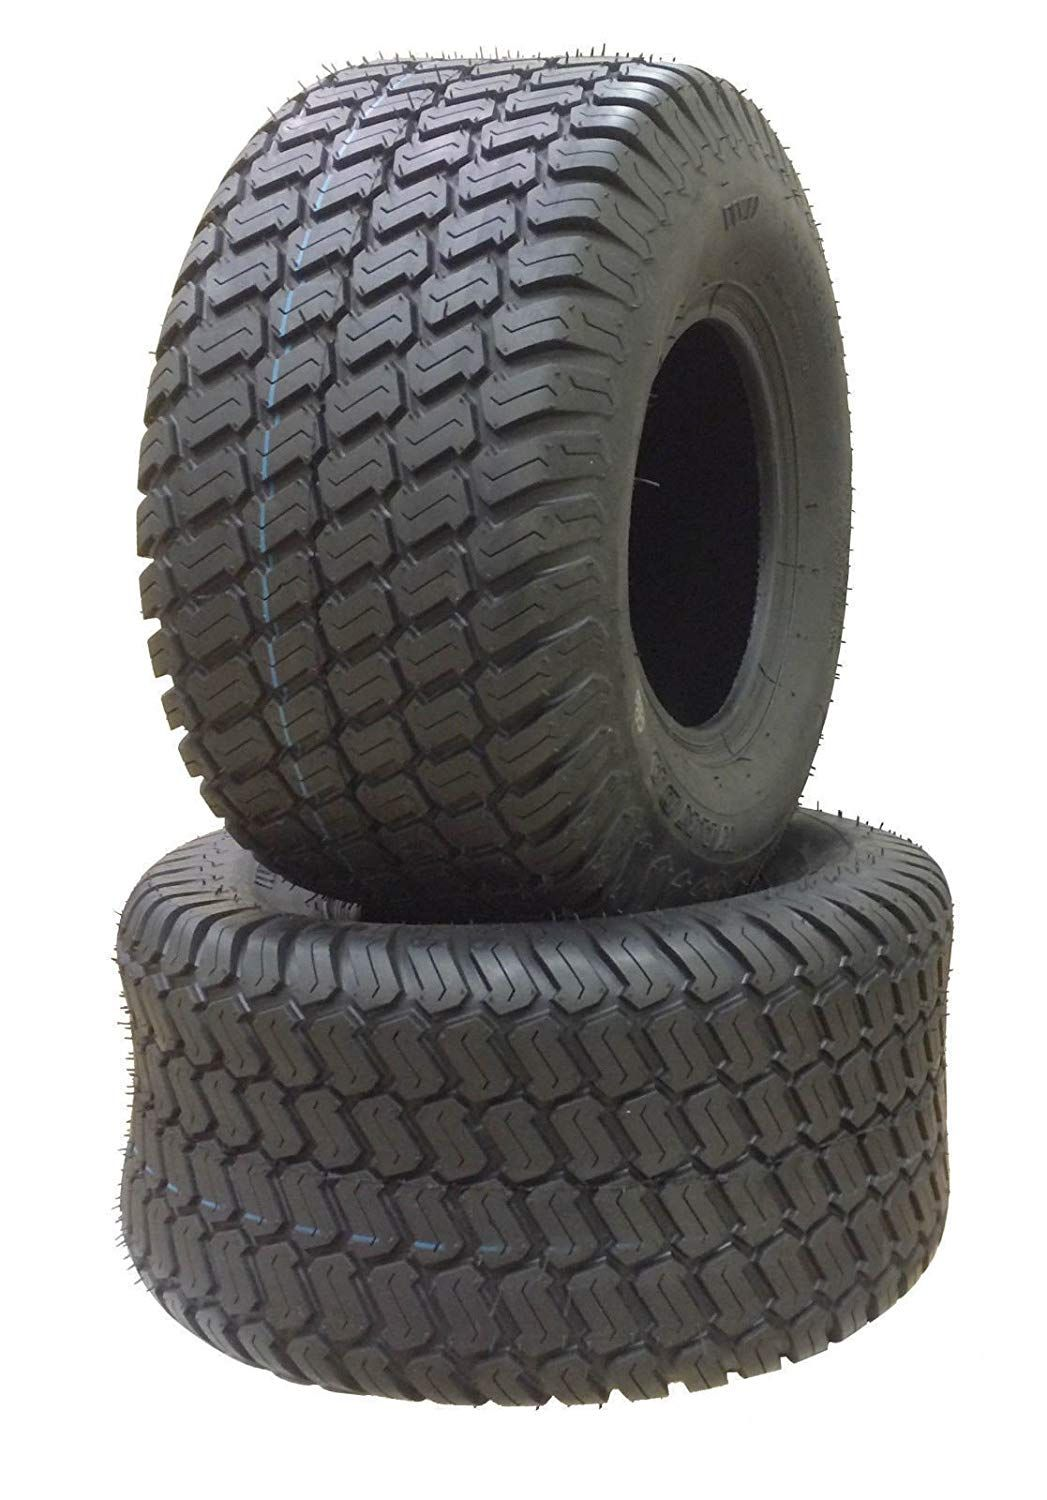 Set Of Two Airloc 23x8 50 12 23x8 50x12 Heavy Duty 6 Ply Rated Tubeless Mt Turf Tires Read More Reviews Of The Product B In 2020 Lawn Mower Tractor Lawn Mower Mower